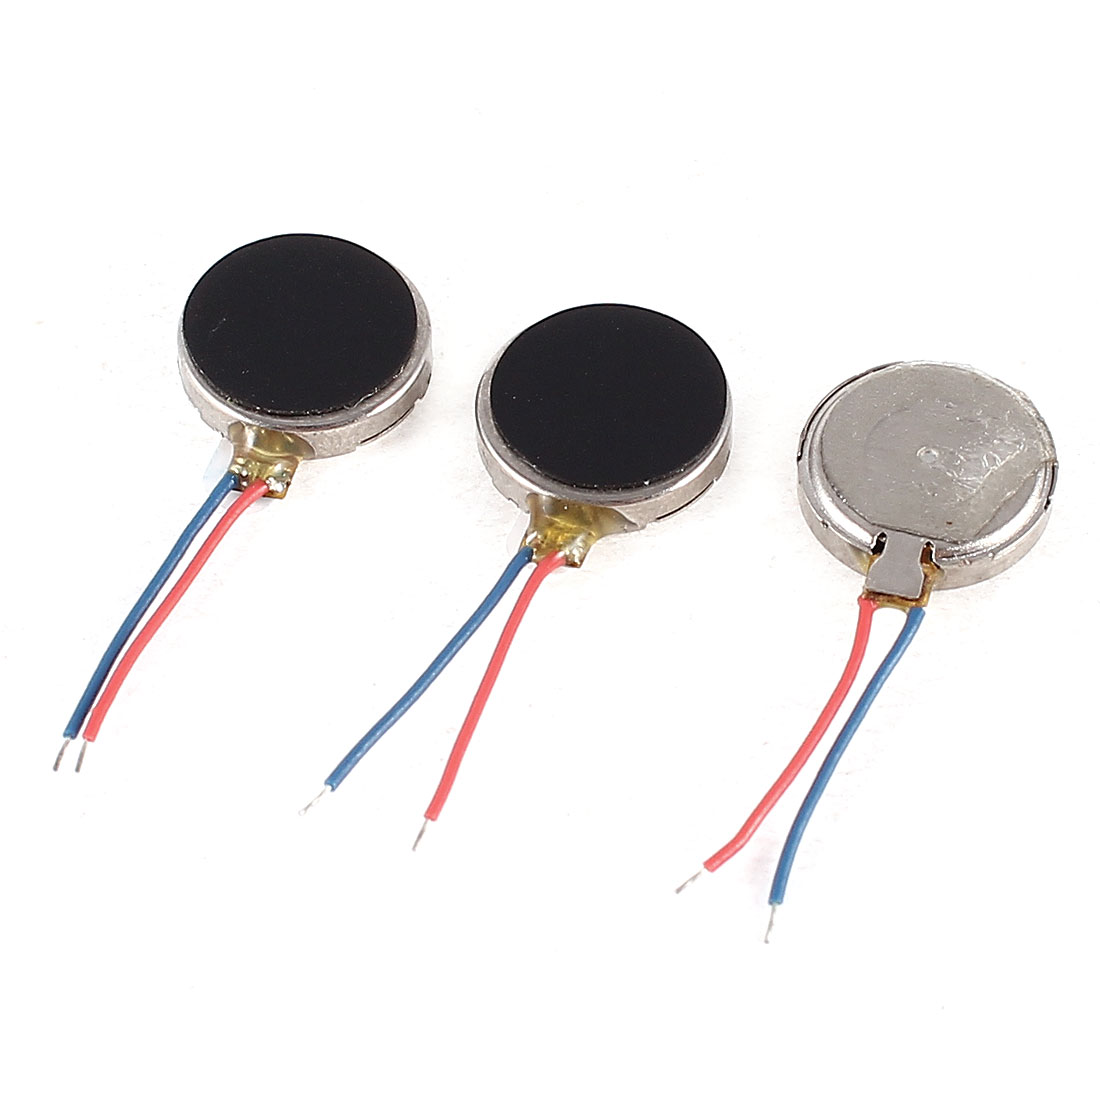 3V DC 2 Leads 10mm x 2.7mm Coin Mobile Phone Vibration Motor 3 Pcs - image 1 of 1